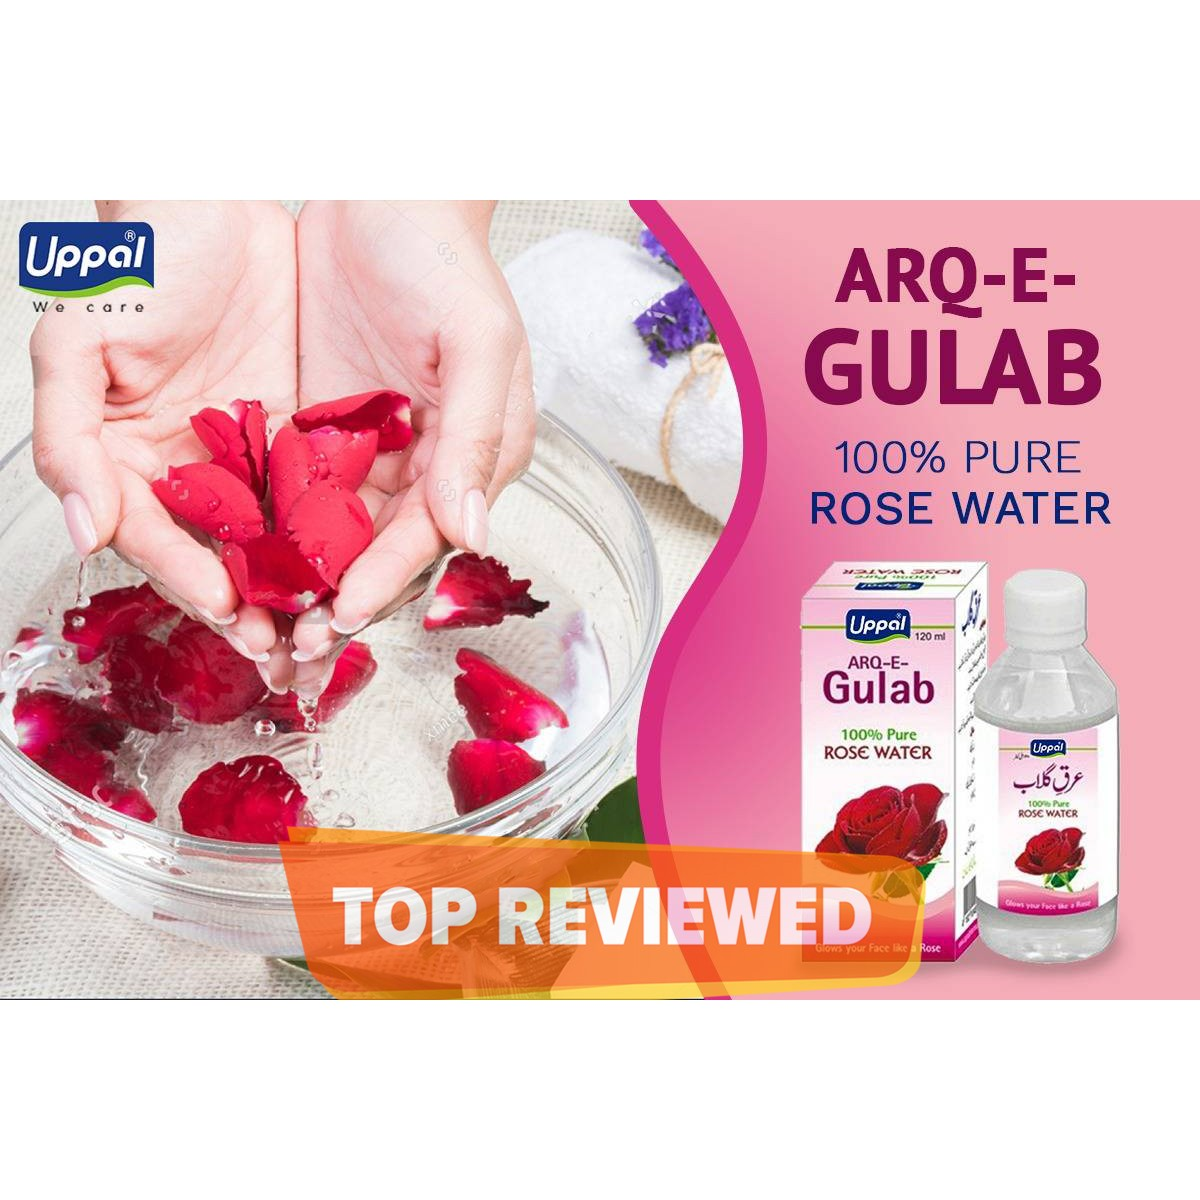 Rose Water Pure Arq e Gulab refreshes the face and skin